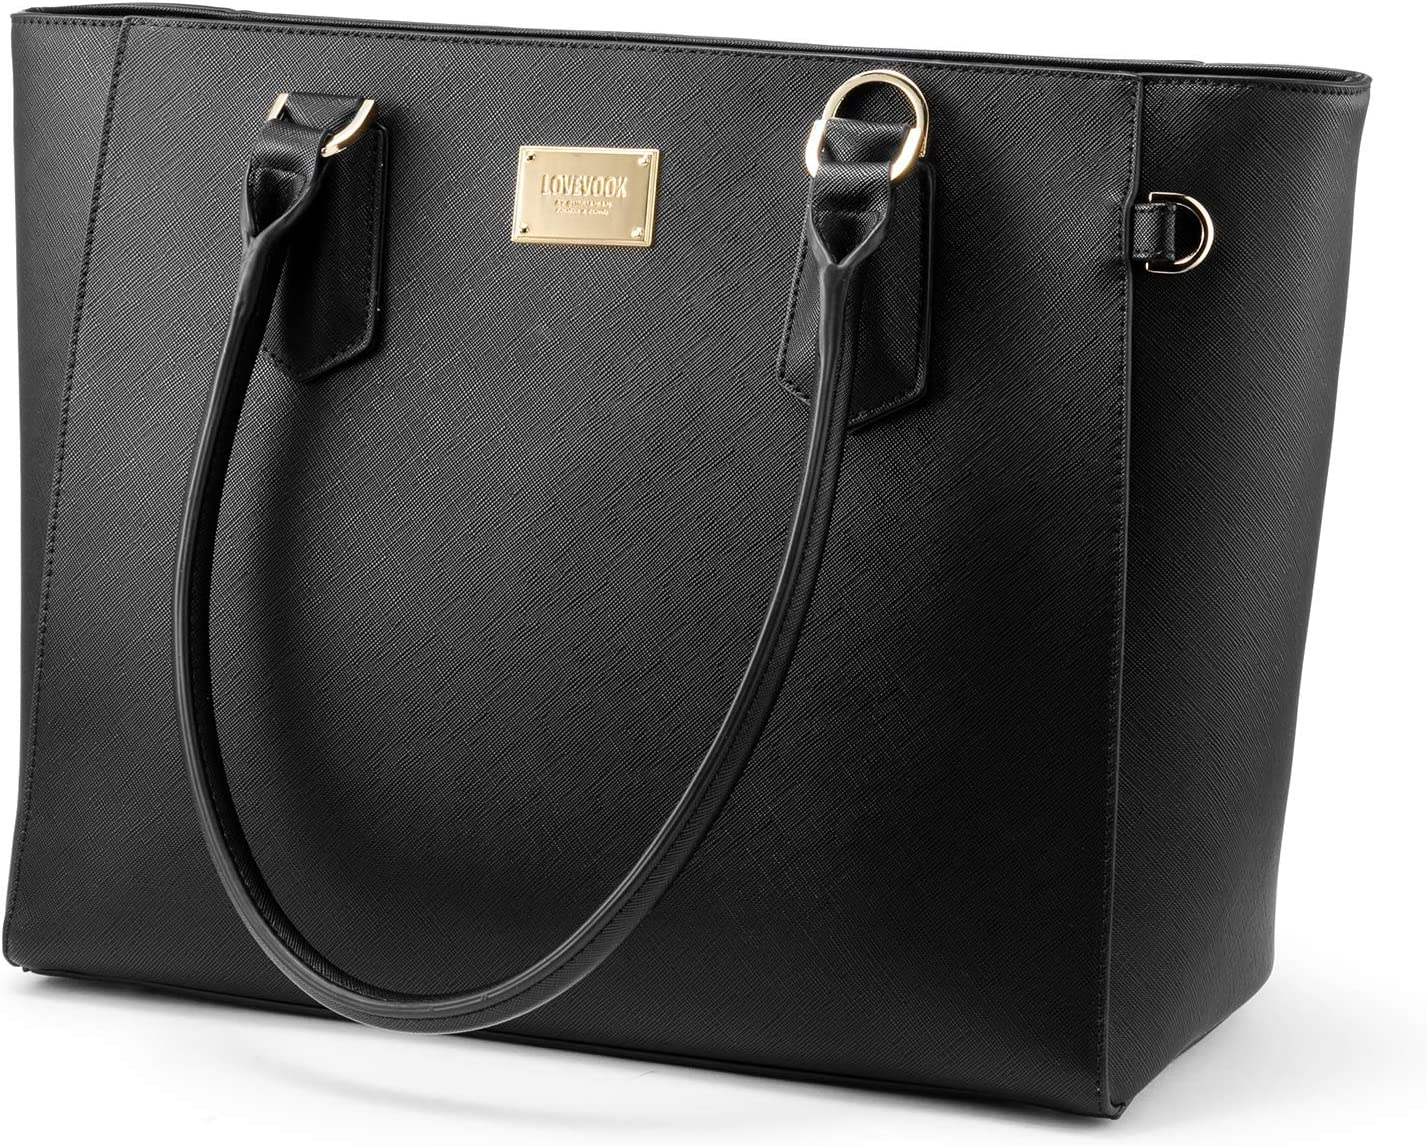 LOVEVOOK Laptop Bag for Women Leather Computer Bag Classic Work Purse, Full Padded Compartment, 15.6-Inch, Black